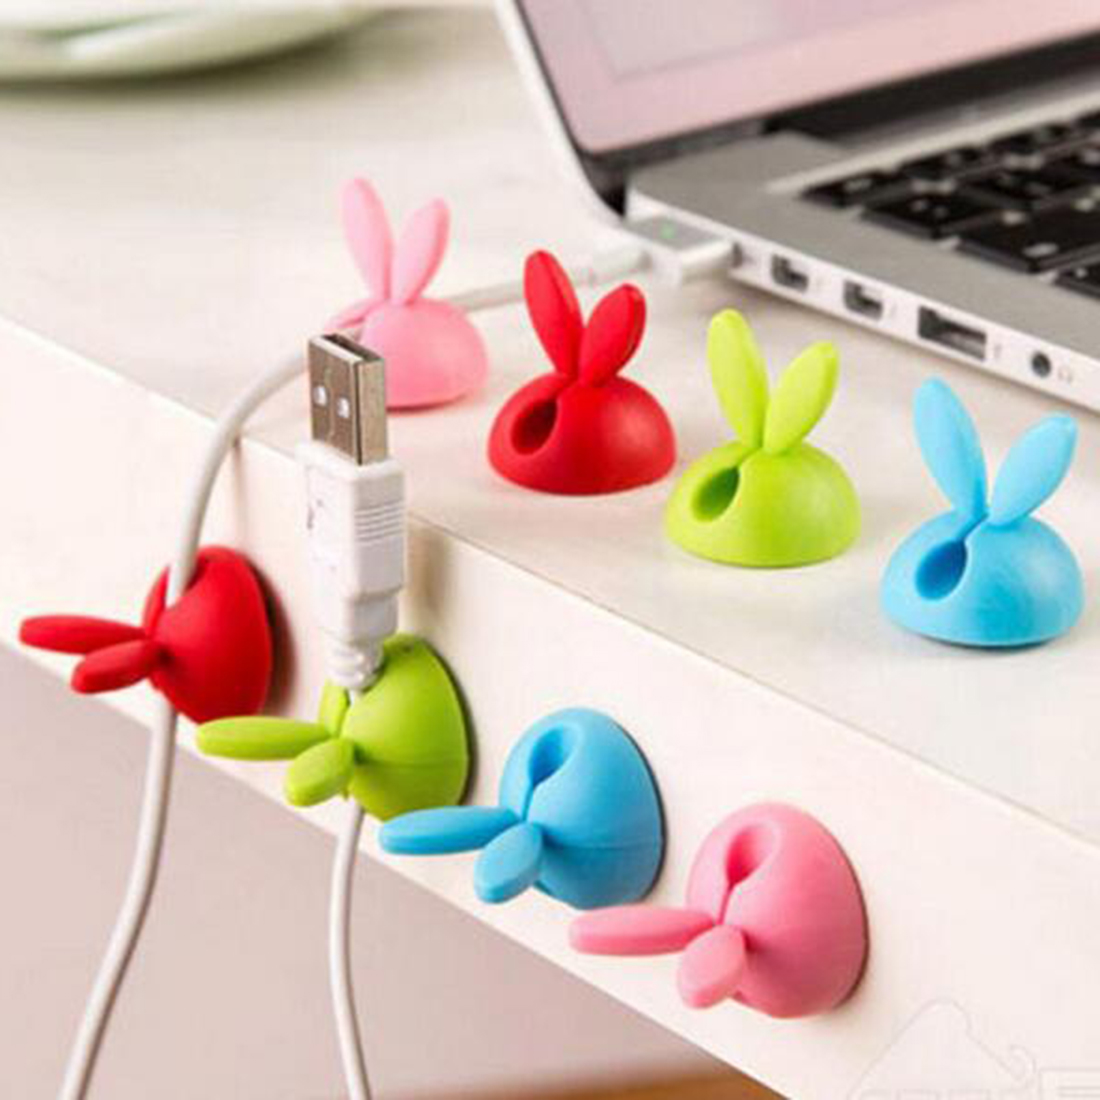 Faithful Marsnaska 4pcs Bunny Ear Rabbit Cable Clips Cord Ties Holder Cable Fastener Desk Tidy Organiser Wire Cord Usb Charger Holder Relieving Rheumatism Digital Cables